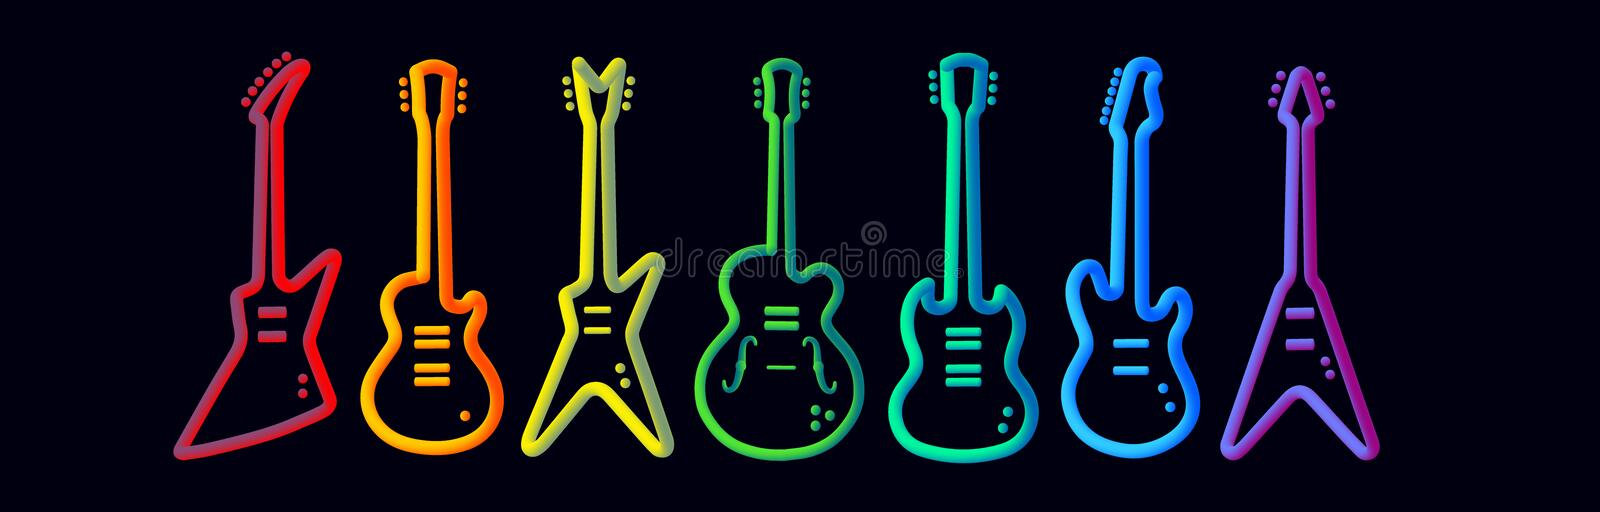 Rainbow color musical instruments neon tubed silhouette abstract design concept rock band performance royalty free illustration